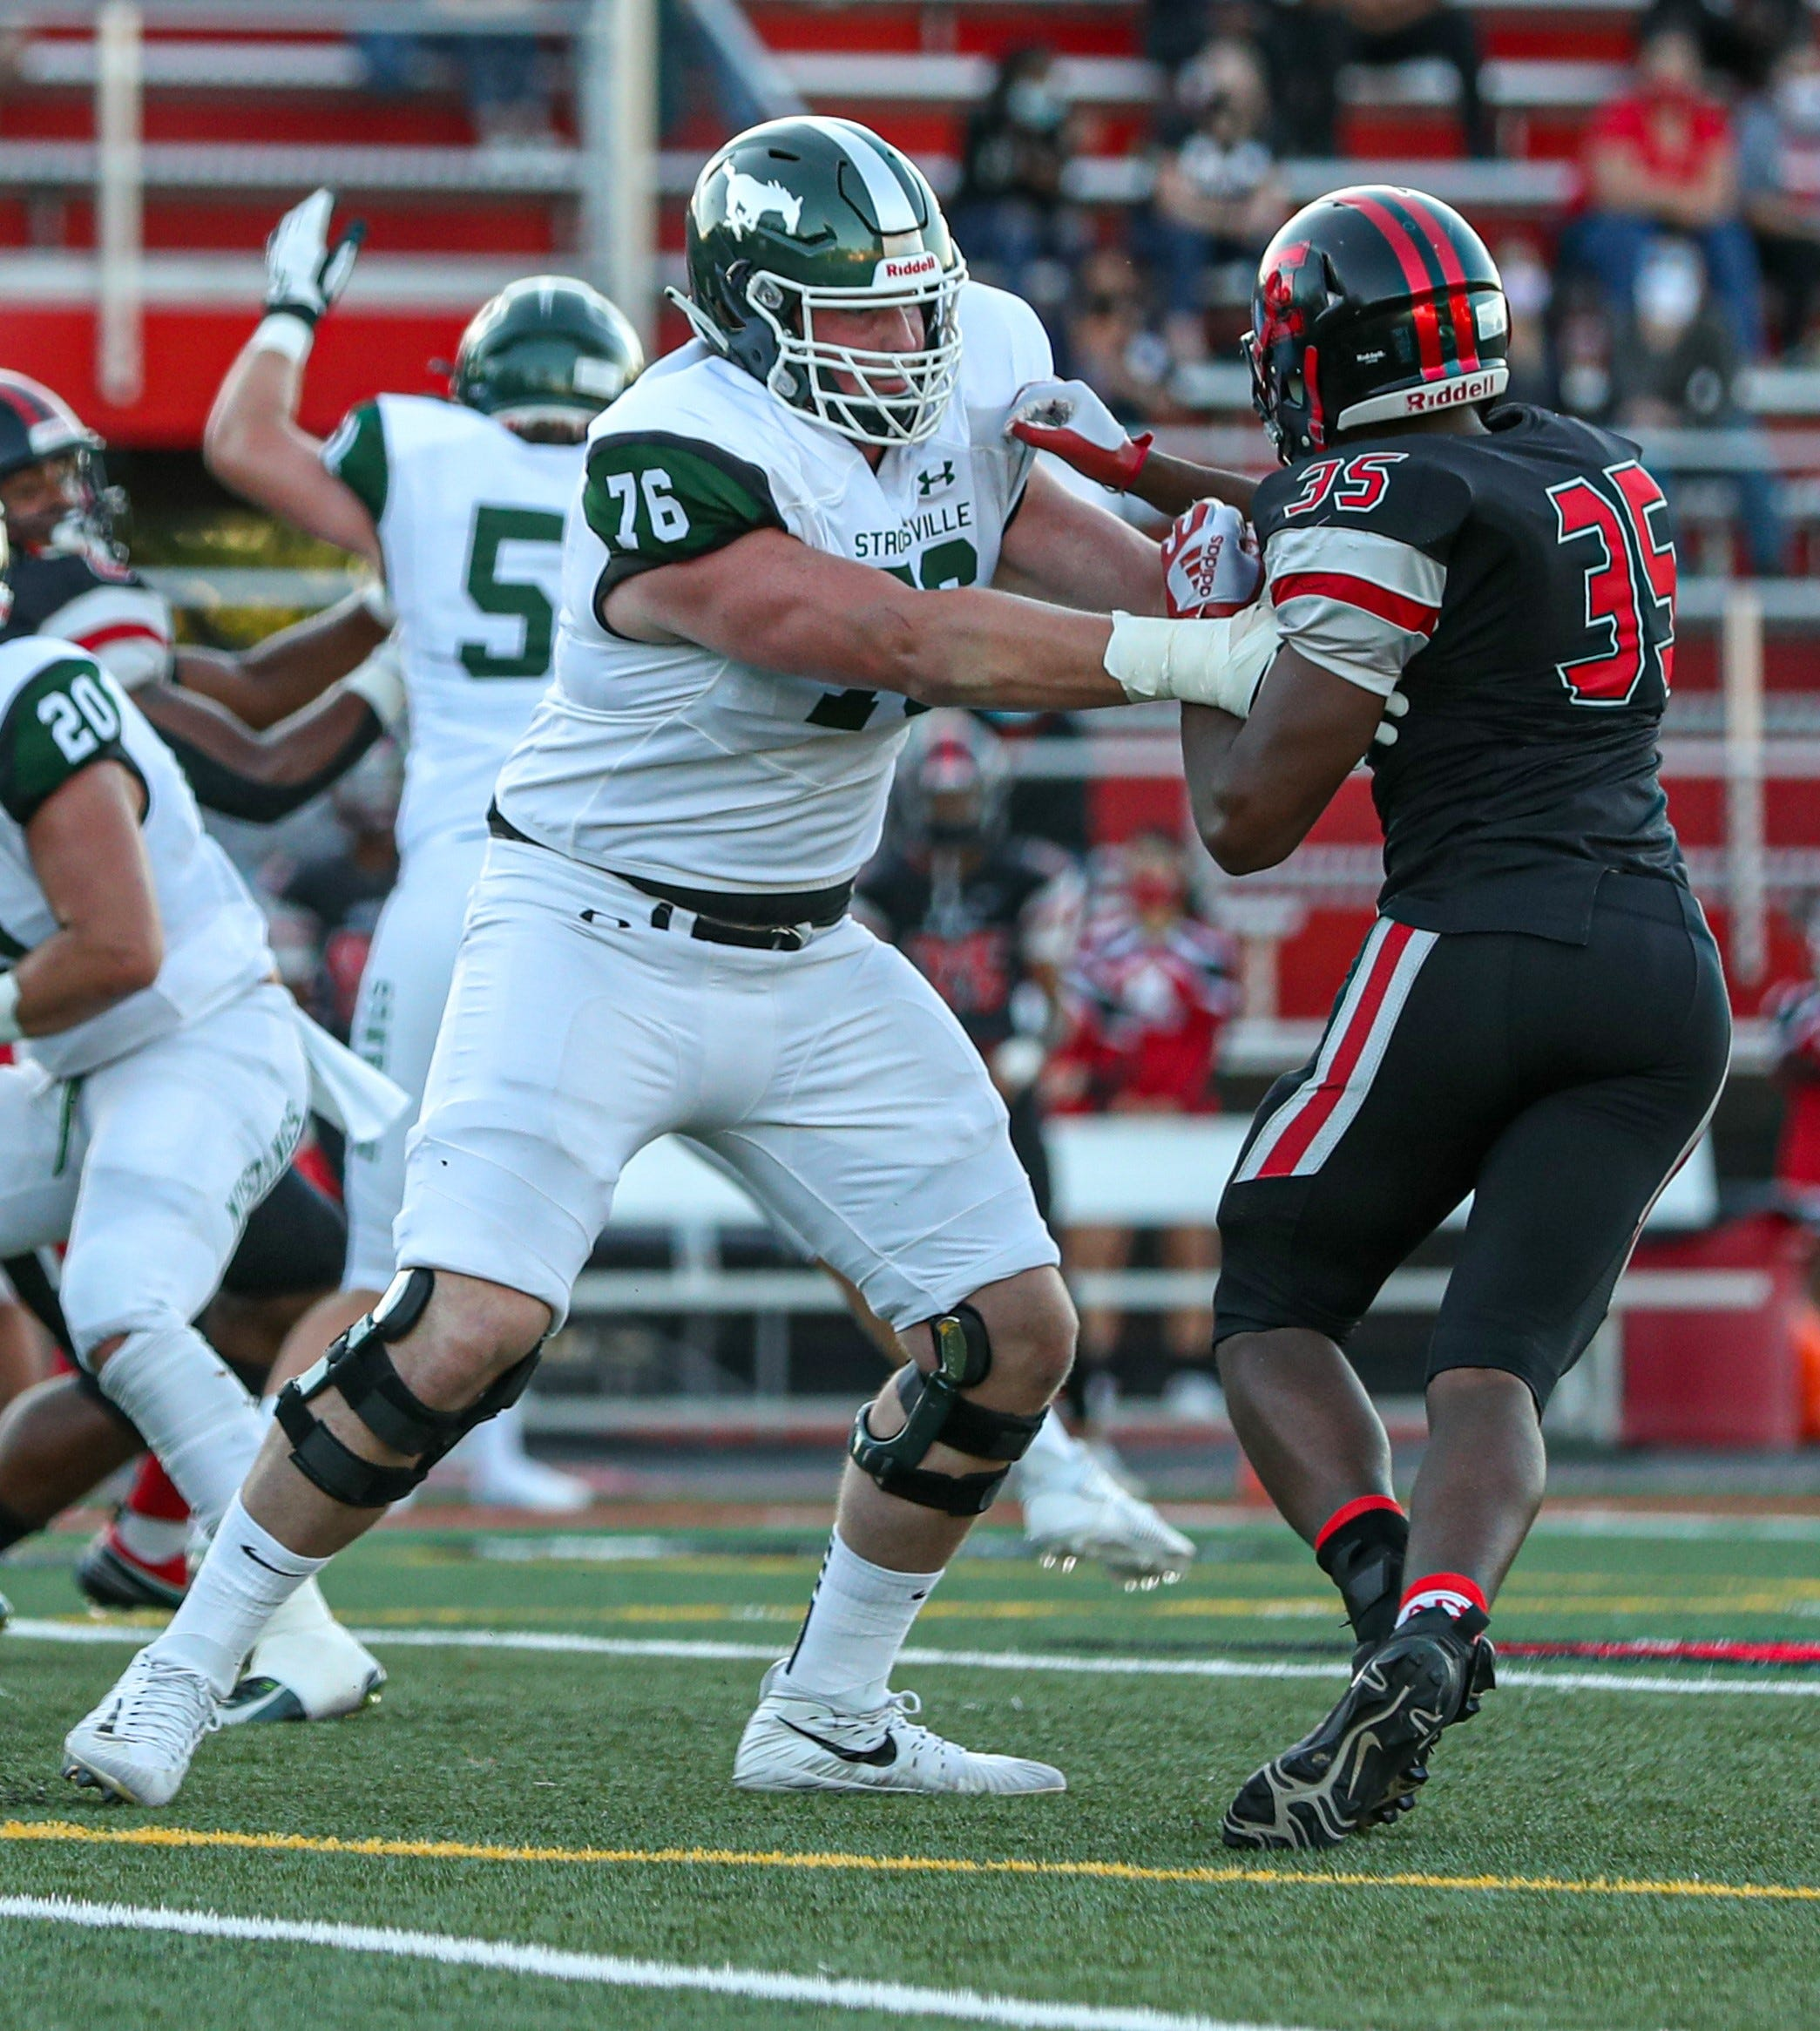 Strongsville's Blake Miller is one of the nation's top offensive tackles. He did not allow a sack in 2020 and is committed to Clemson.